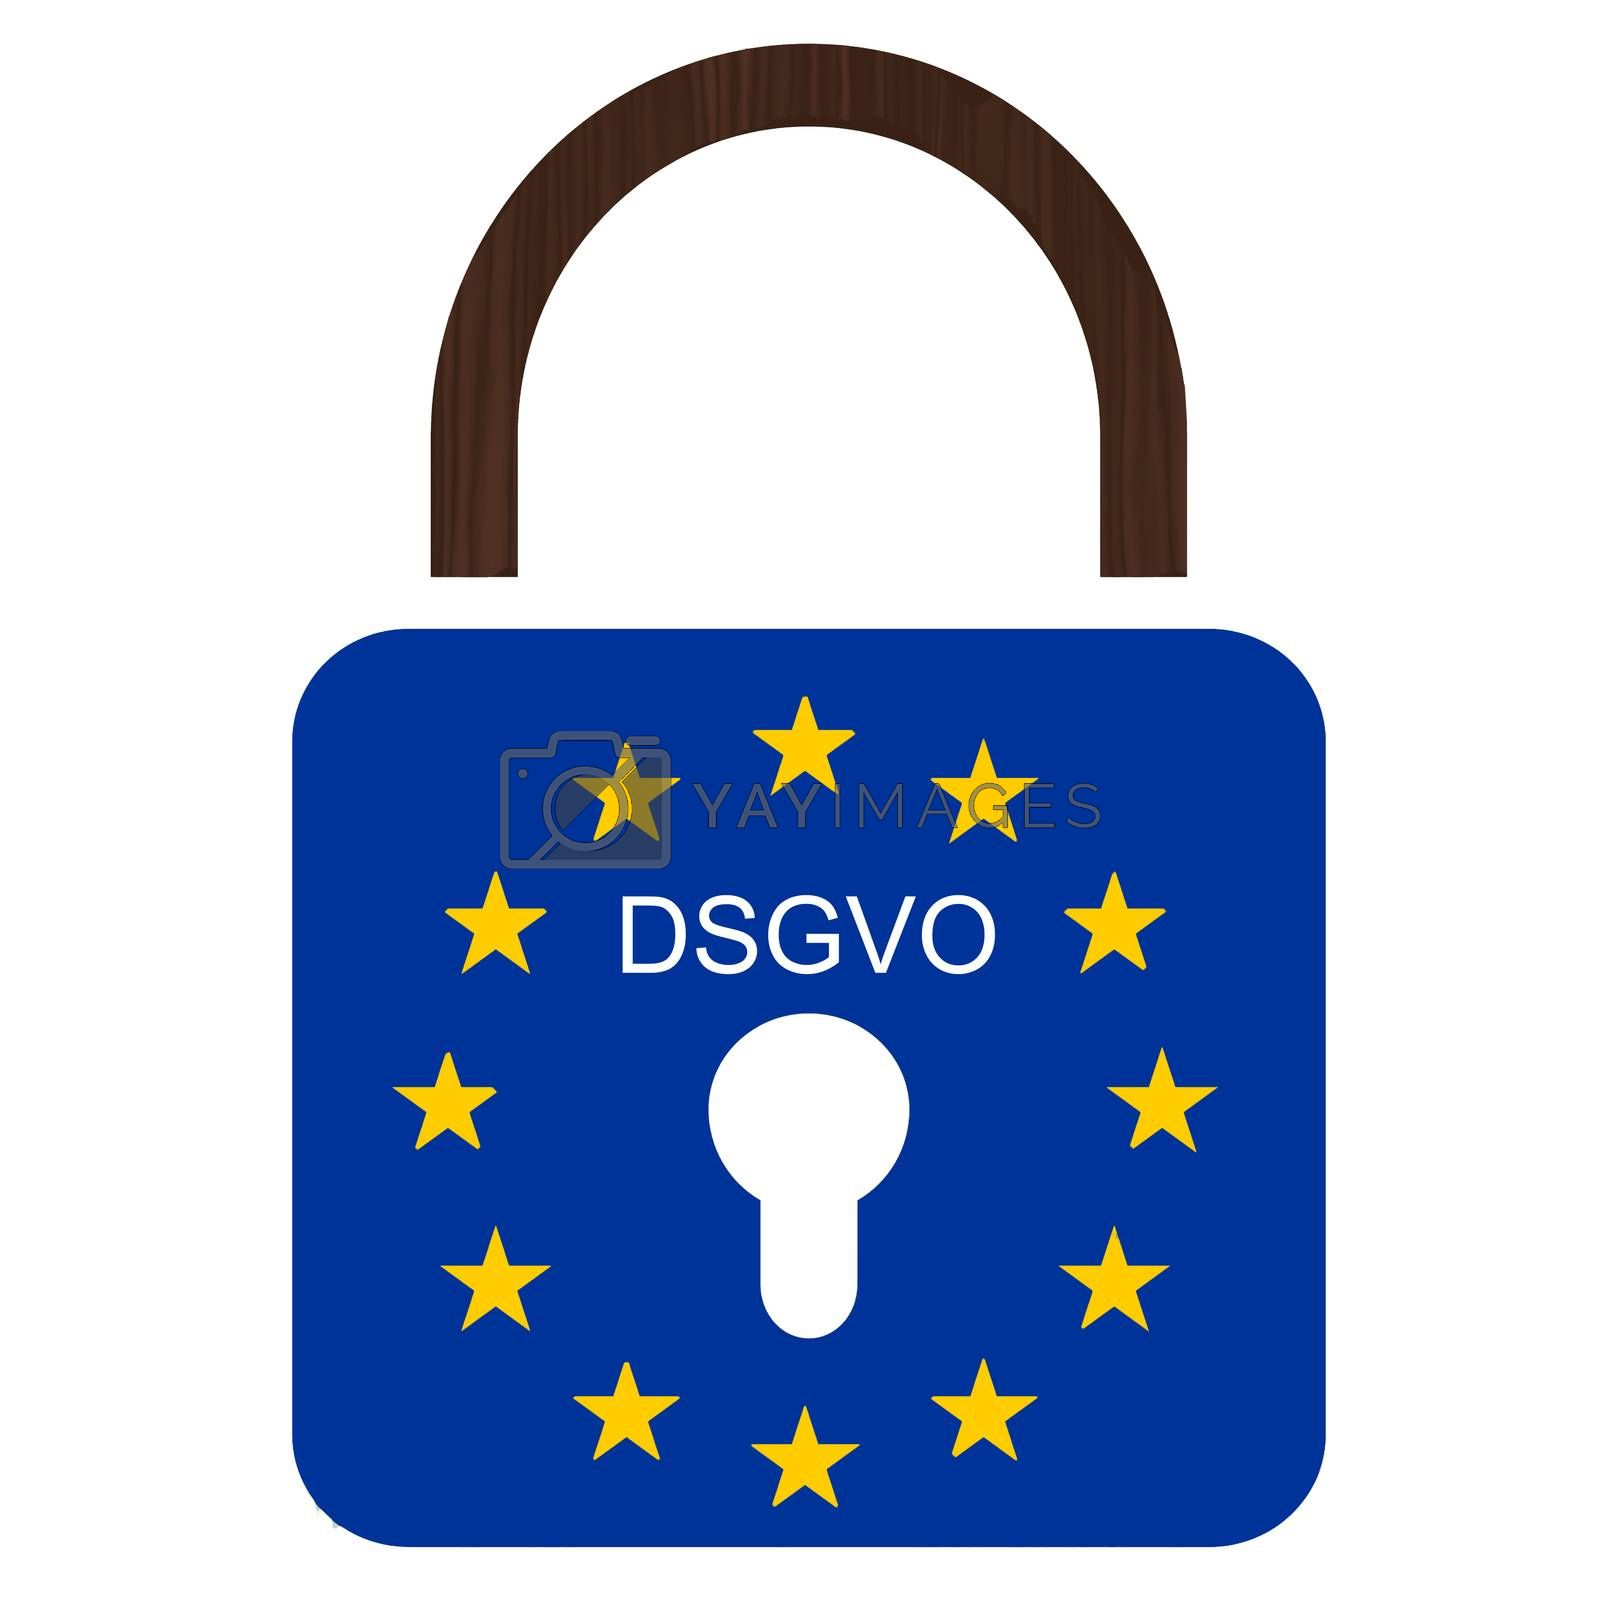 European flag with text DSGVO and 25.05.2018